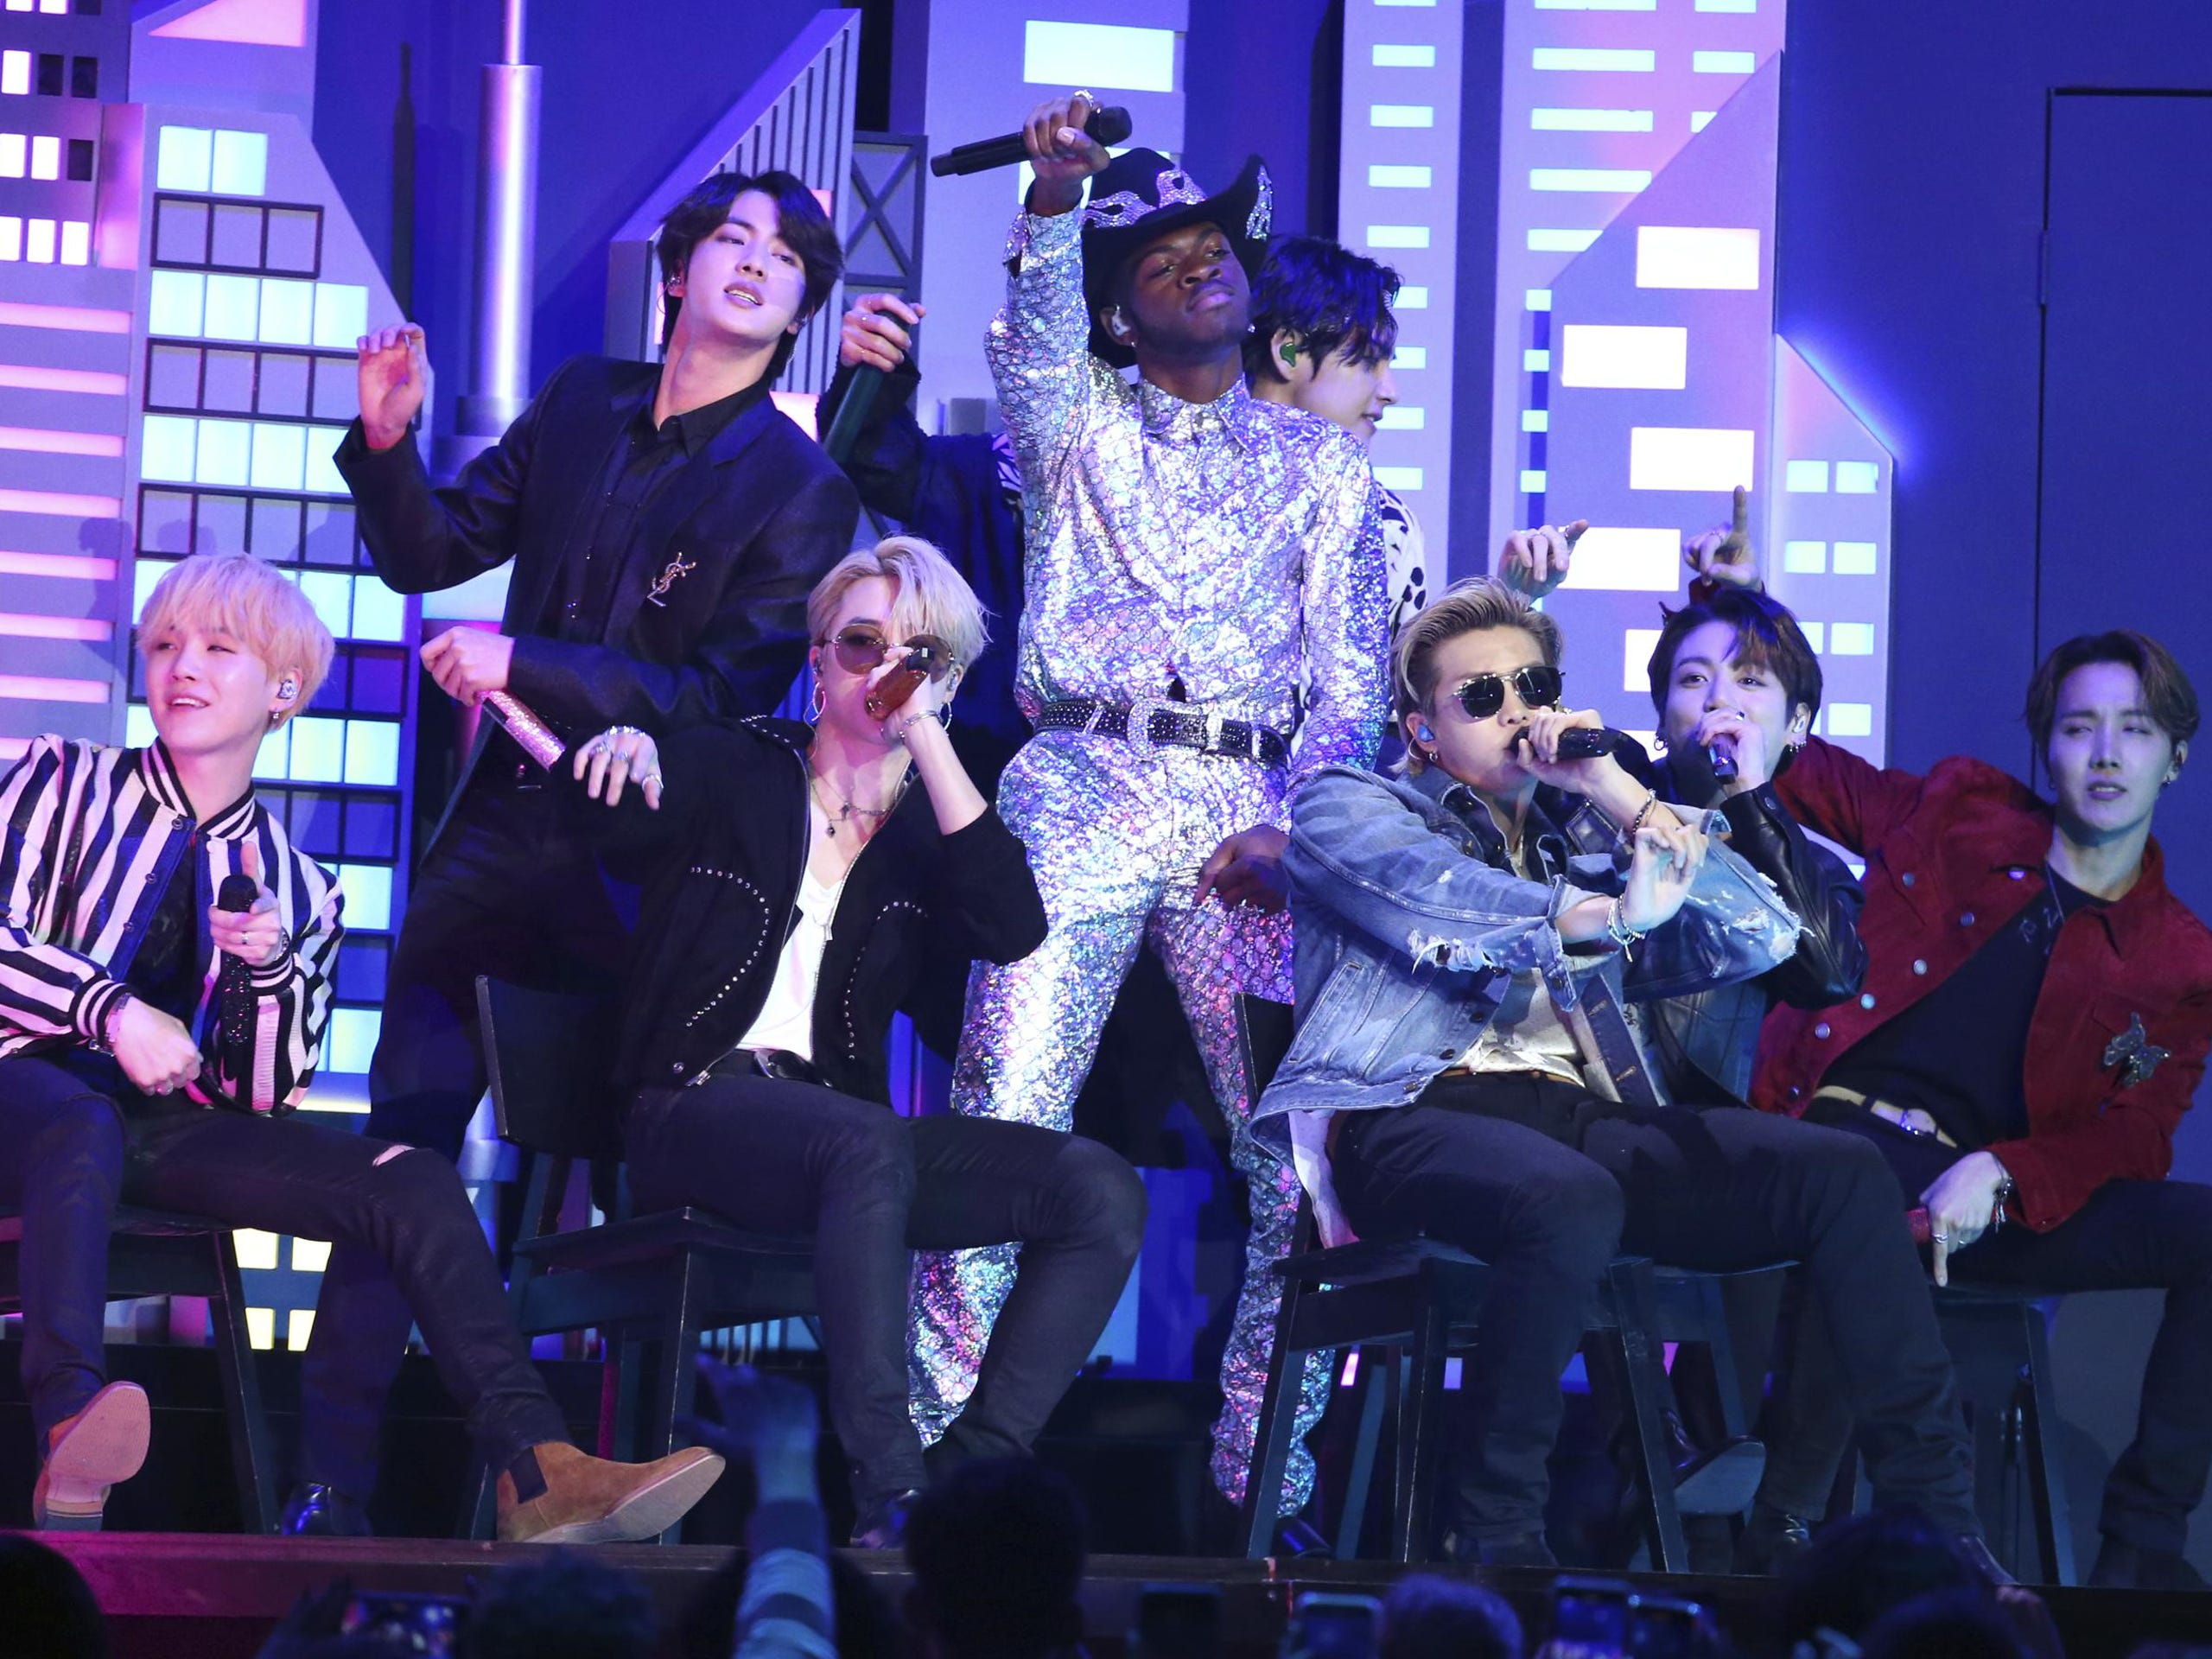 """Lil Nas X, background center, performs """"Old Town Road"""" with members of the South Korean pop group BTS at the Grammy Awards on Jan. 26, 2020. """"Dynamite,"""" the group's first all-English song, debuted at No. 1 on the U.S. music charts this week, making BTS the first Korean pop act to top the chart."""